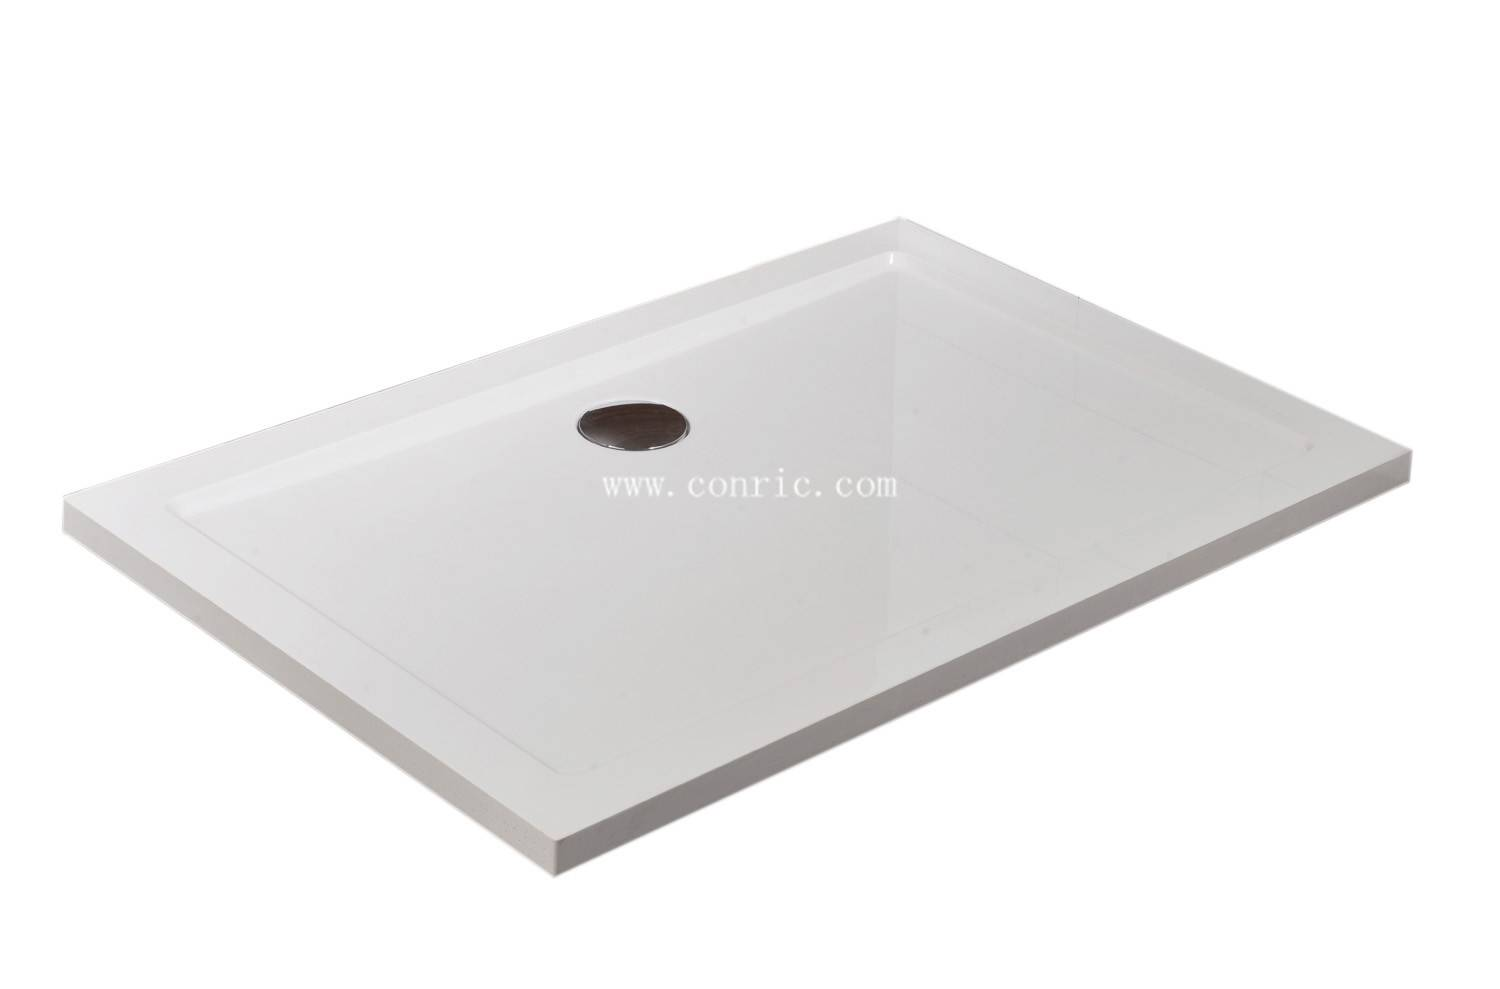 SMC rectangle 80*120*4cm shower tray